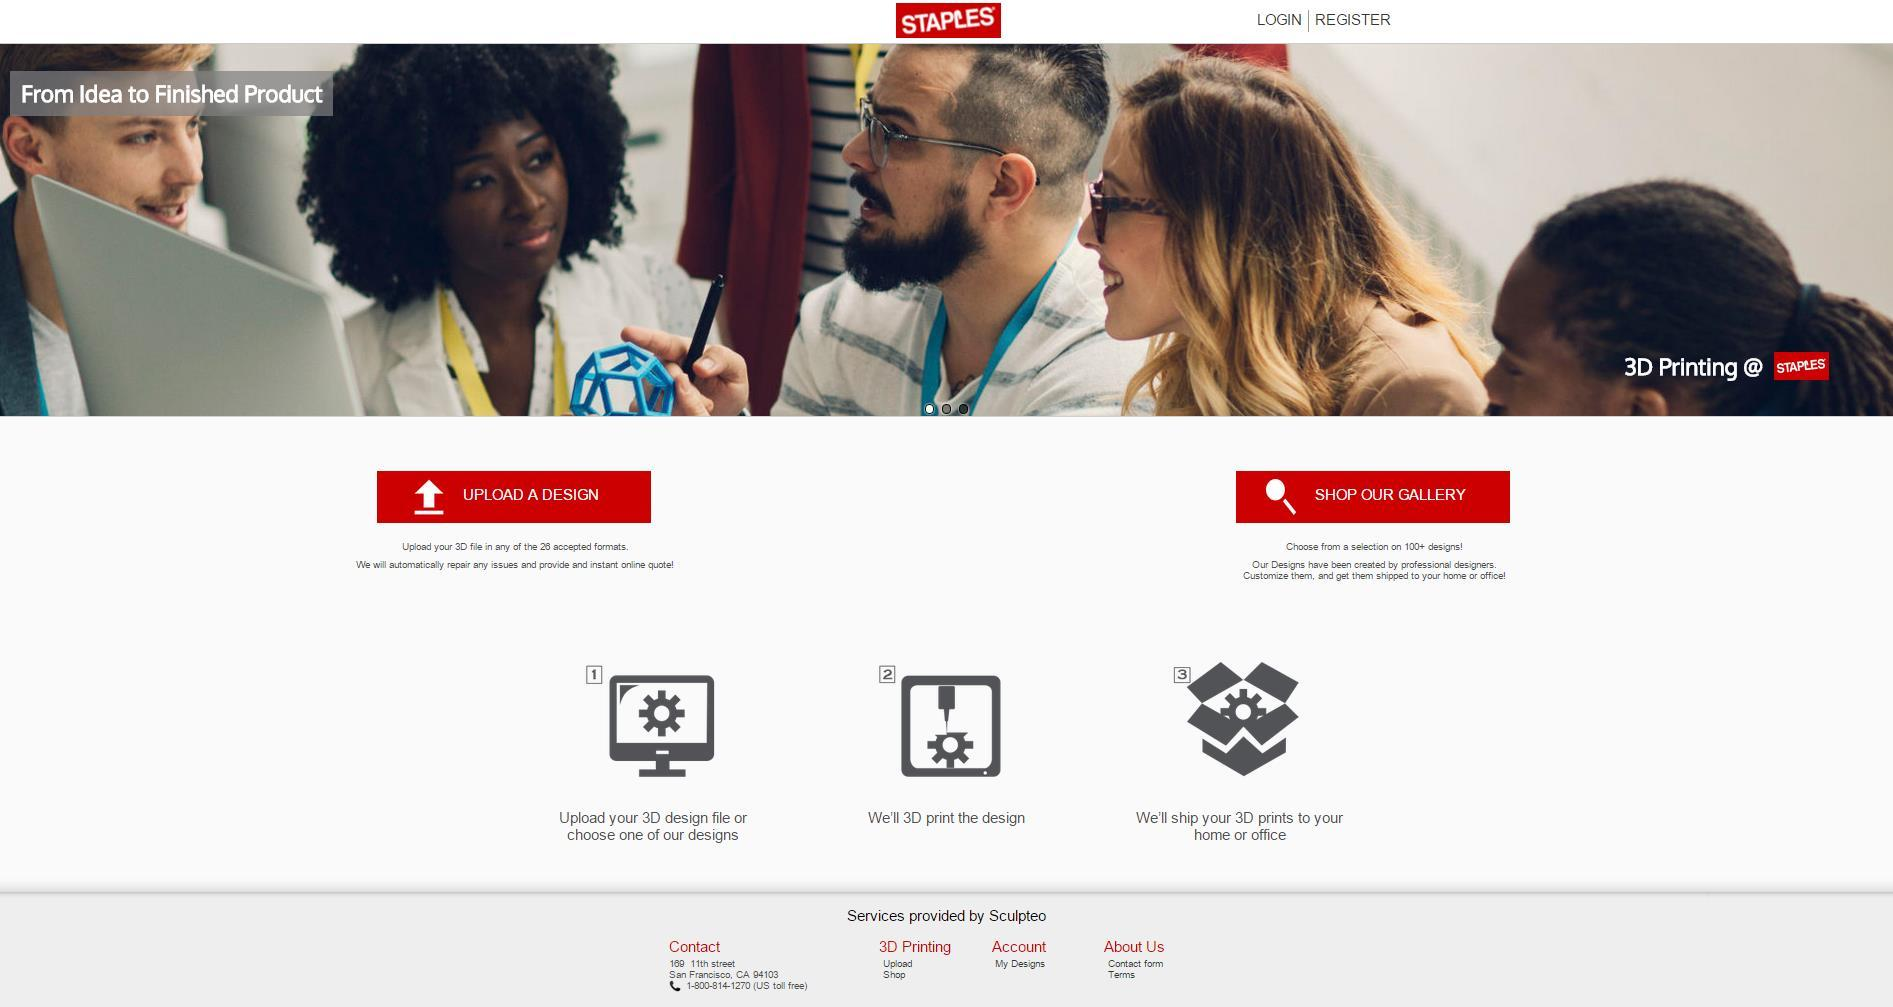 Staples Makes More 3D Printing Happen With New Online Platform ...